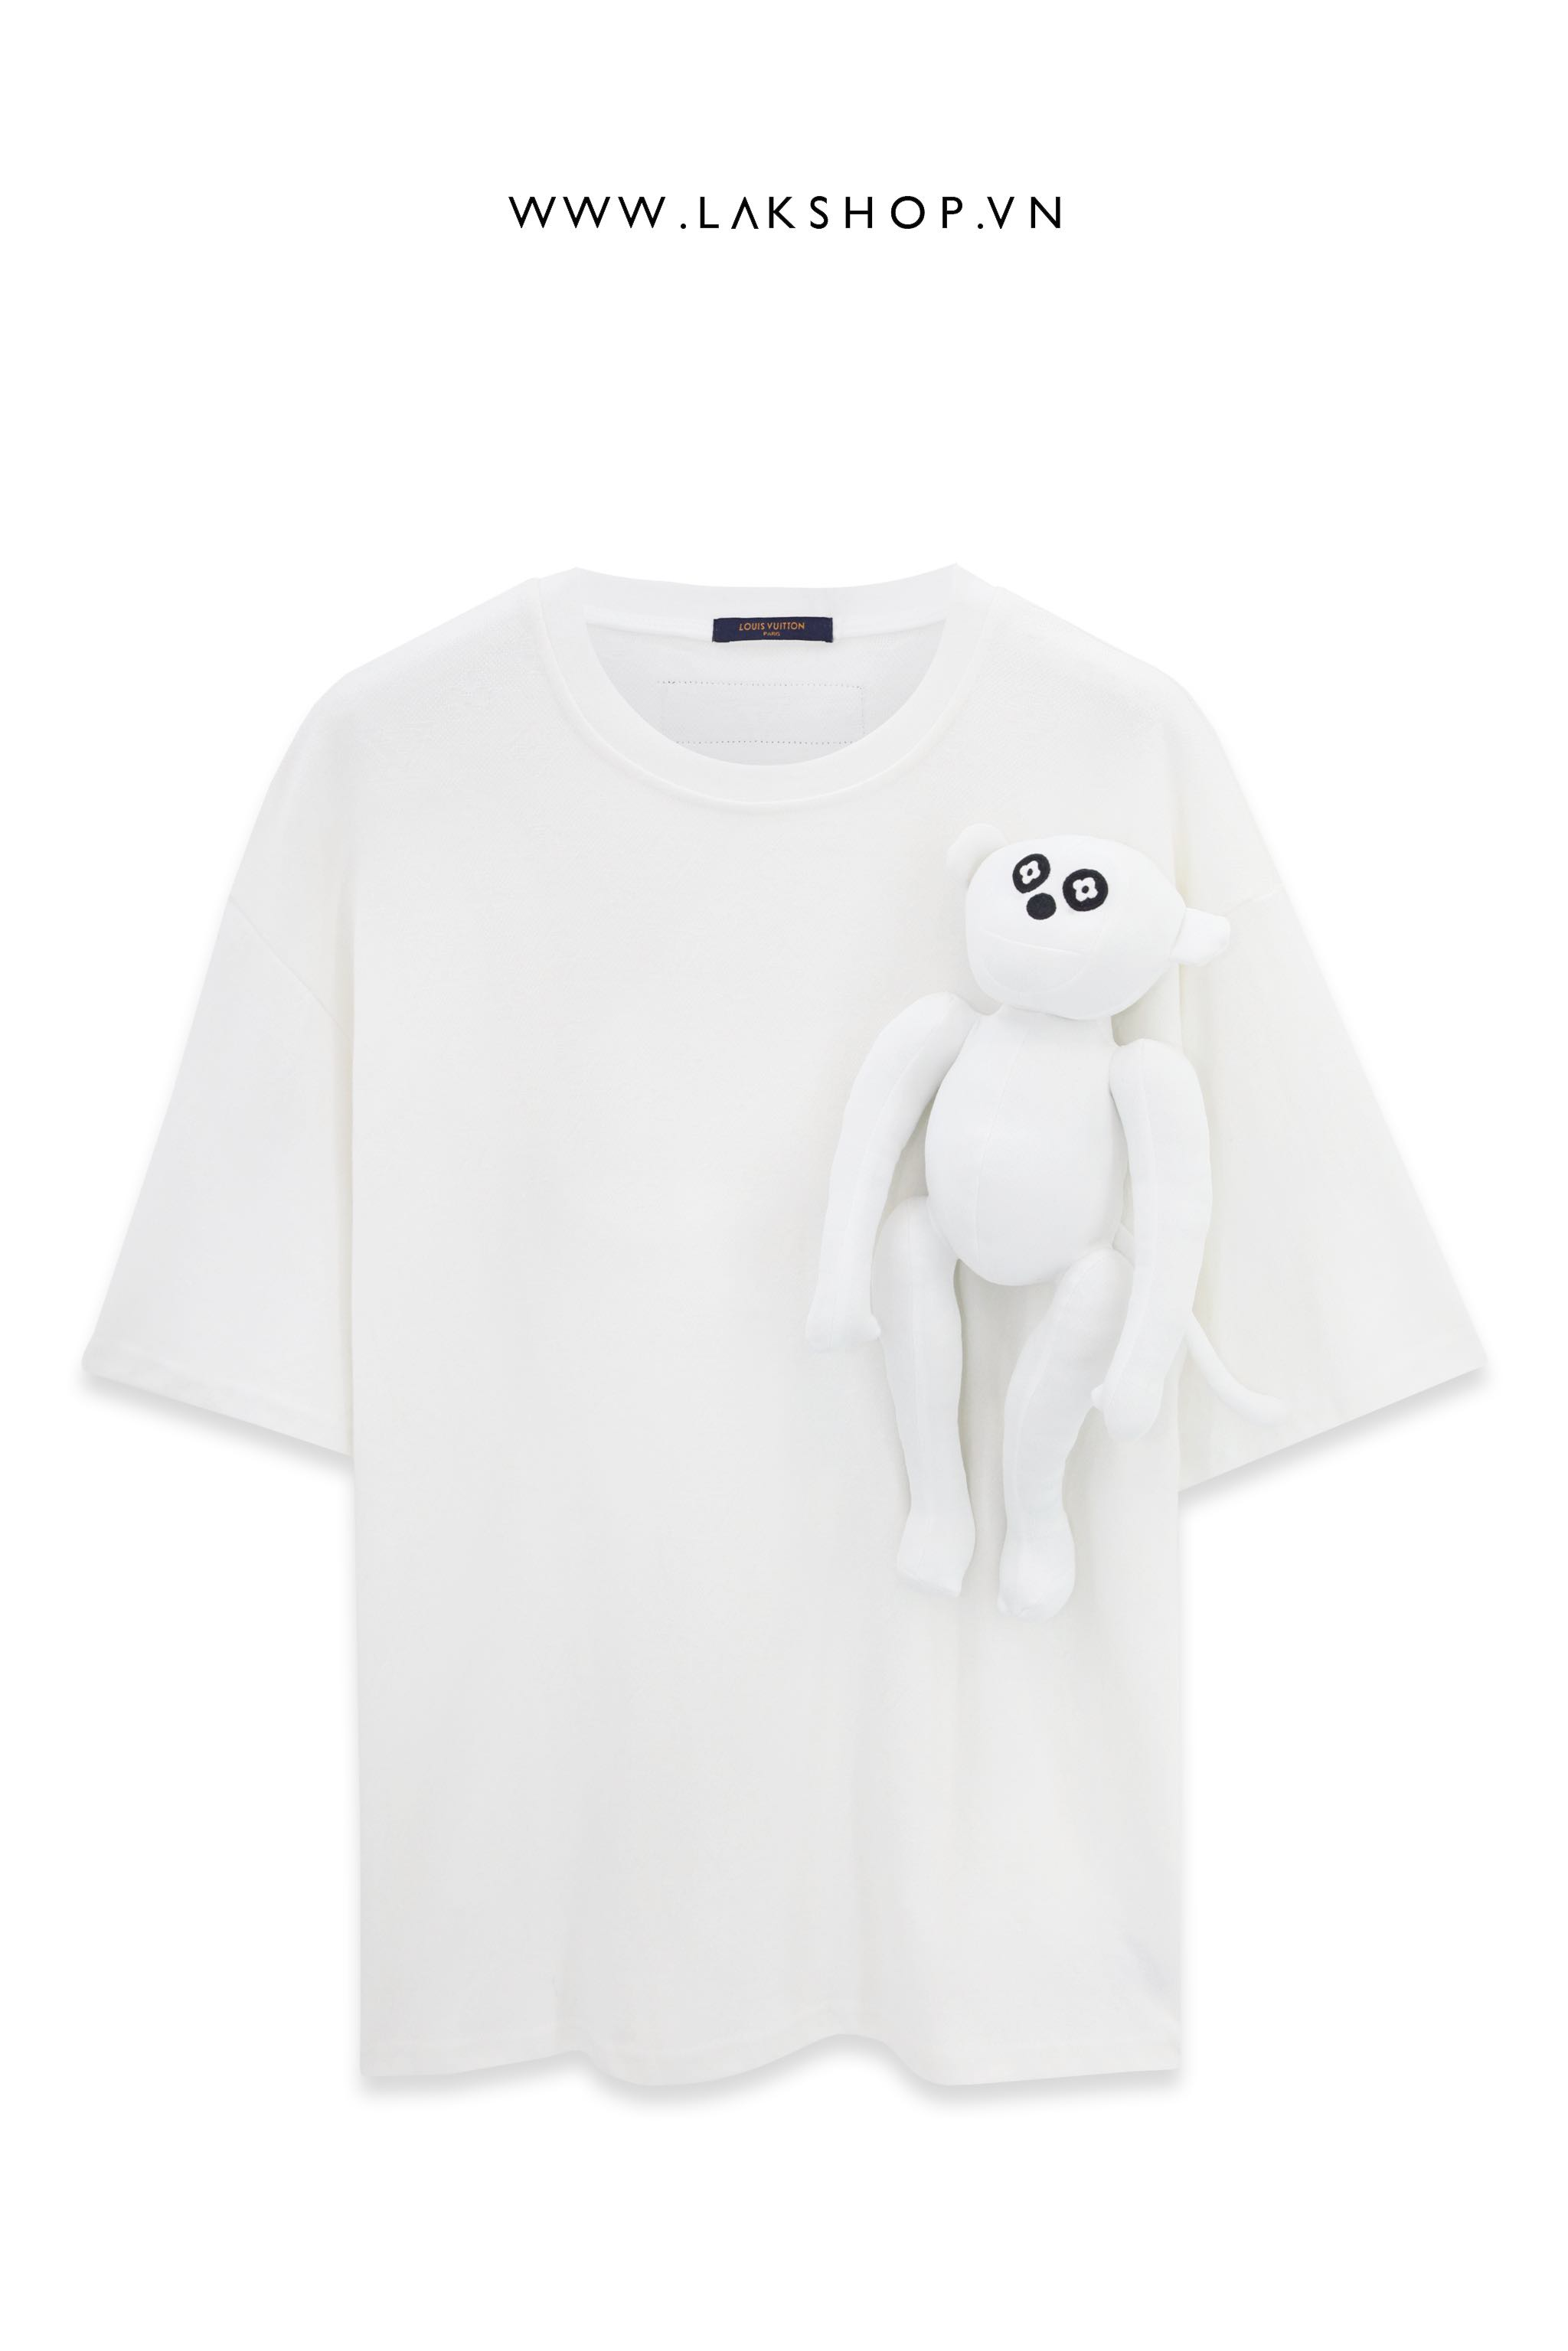 Louis Vuitton 3D Monkey Oversized T-shirt